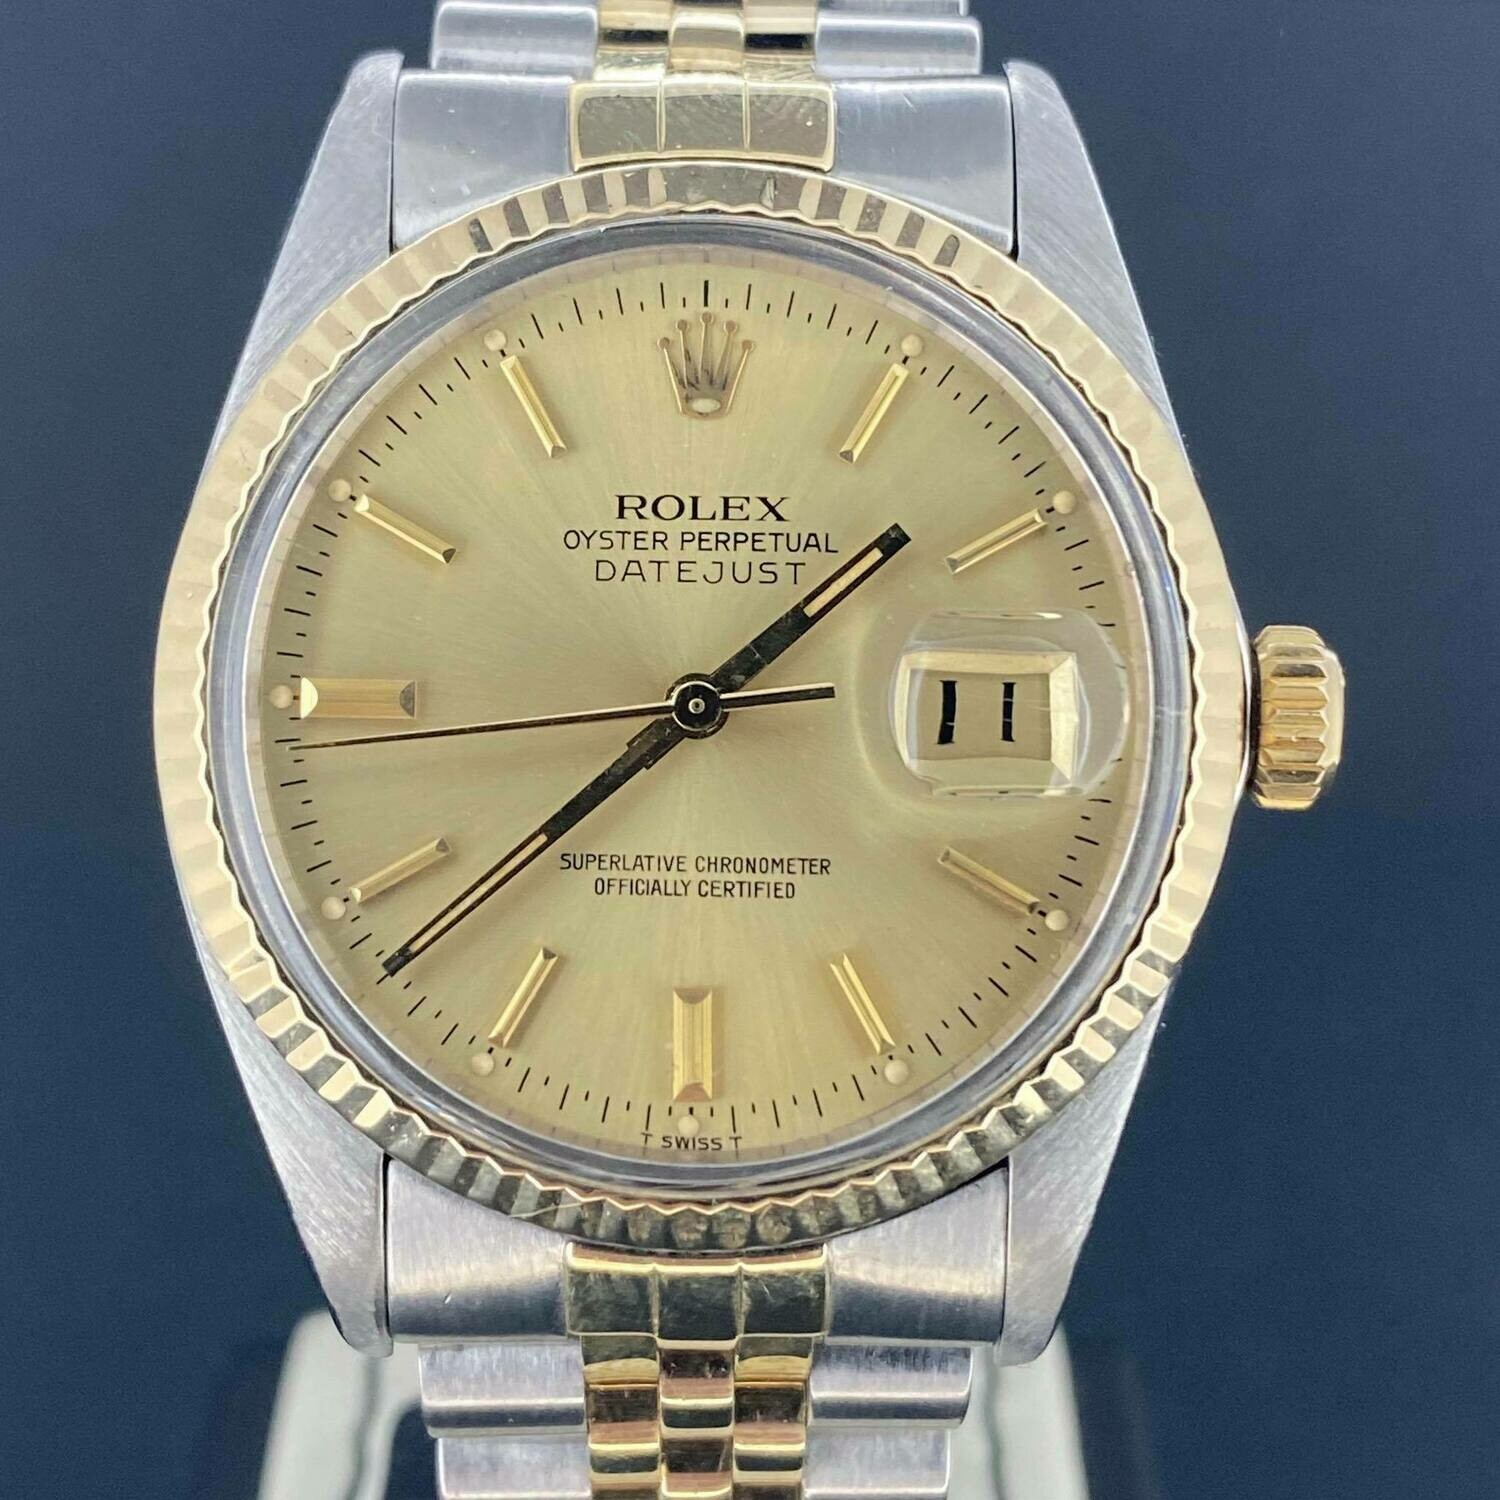 Rolex Datejust 36MM Yellow Gold/Steel Jubilee Fluted Bezel Gold/Champagne Dial Only Box LIKE NEW